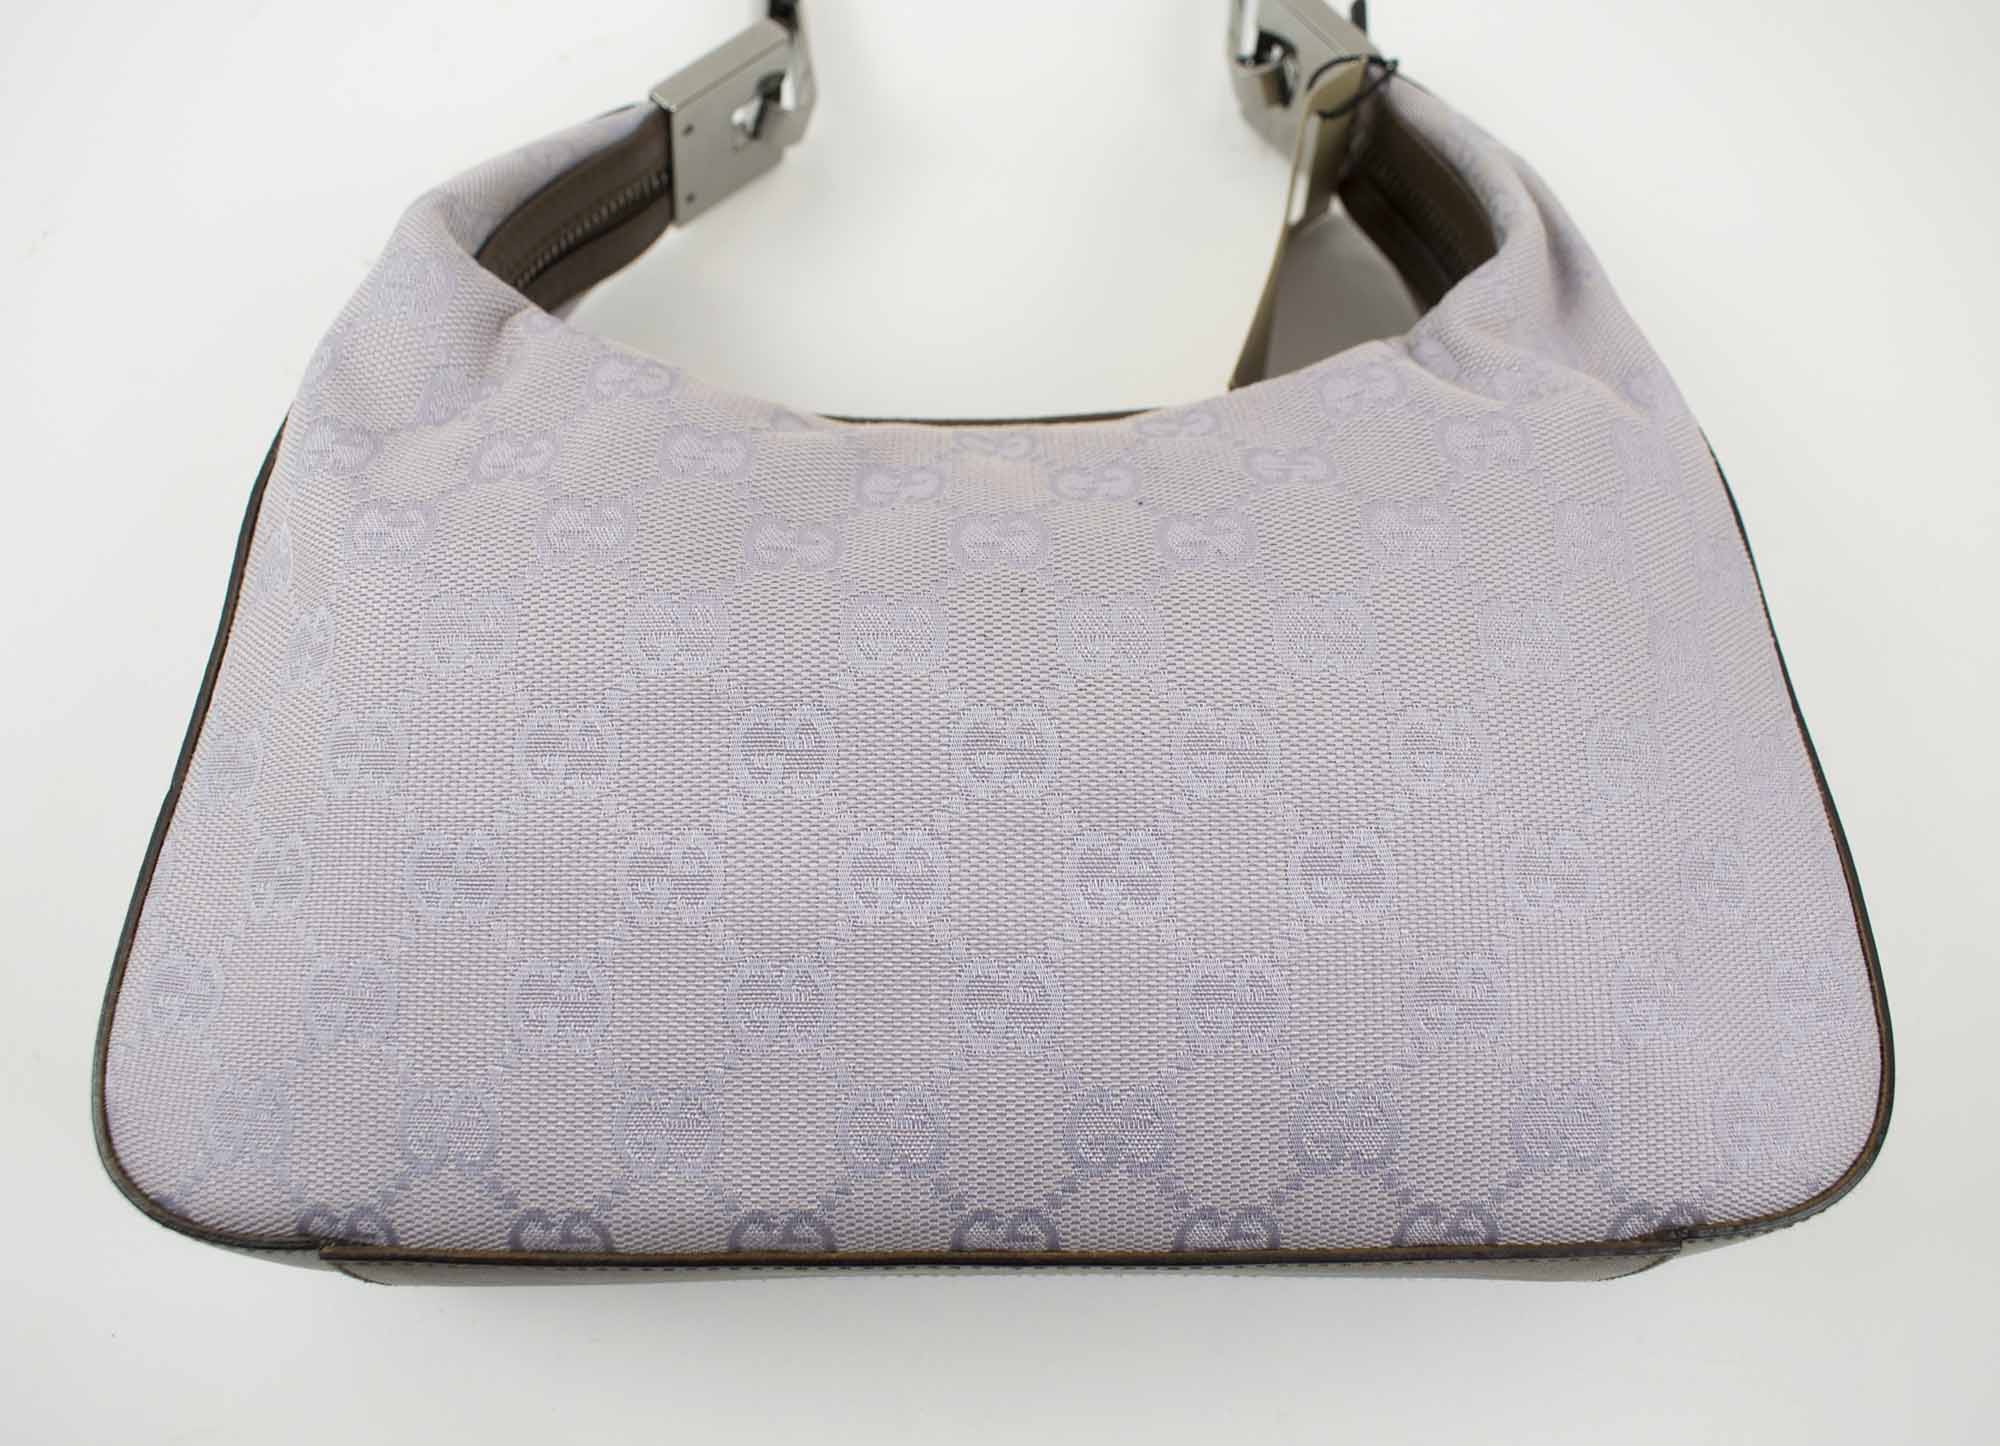 cdabda37e6aa GUCCI MONOGRAM LILAC CANVAS HOBO BAG, with brown leather trim and shoulder  handle, silver tone hardware, with dust bag, 25cm x 16cm H x 5cm.